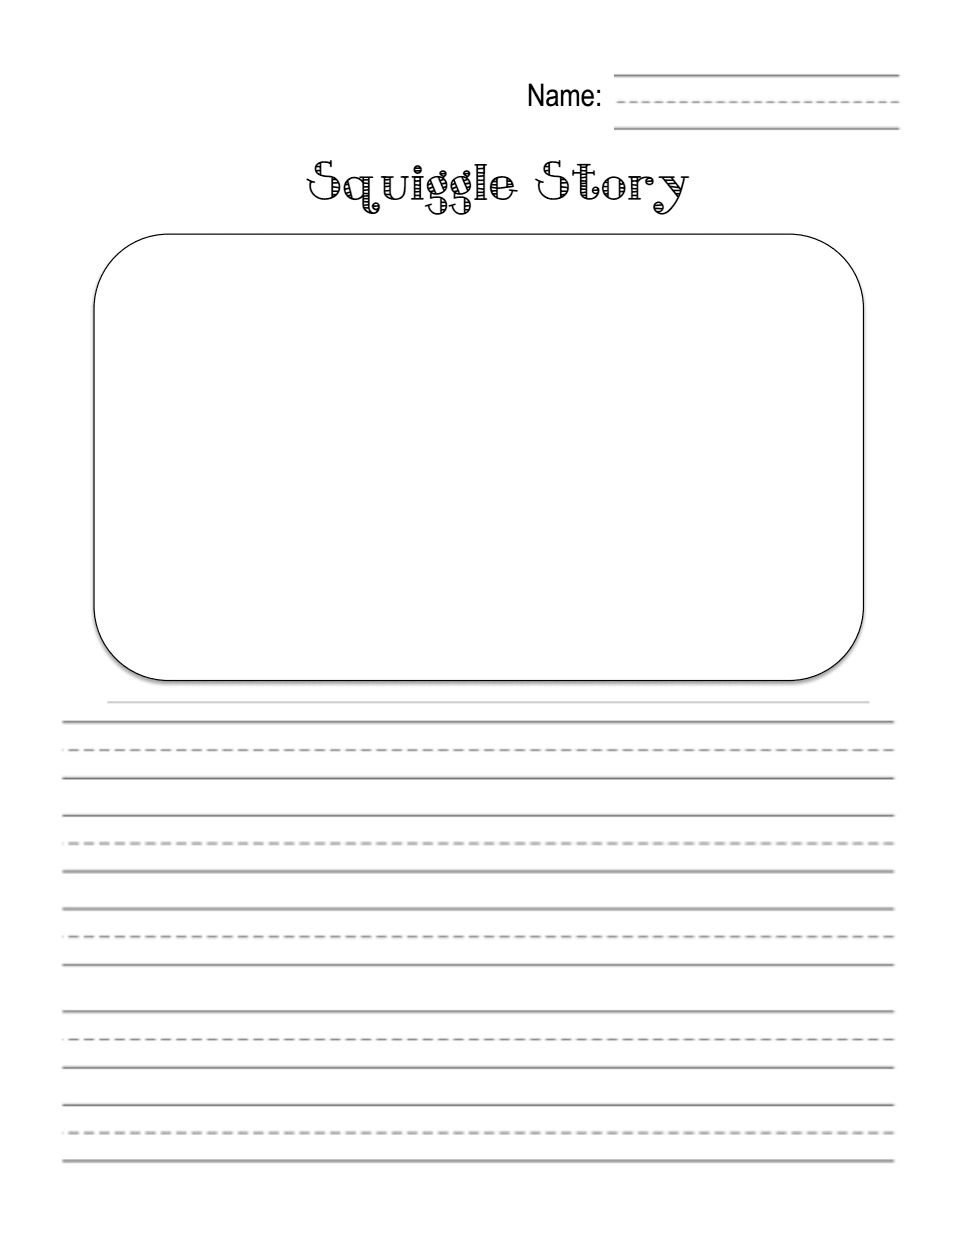 Squiggle Story 1.pdf | All The Kindergarten Writing Ideas I Want To - Free Squiggle Story Printable